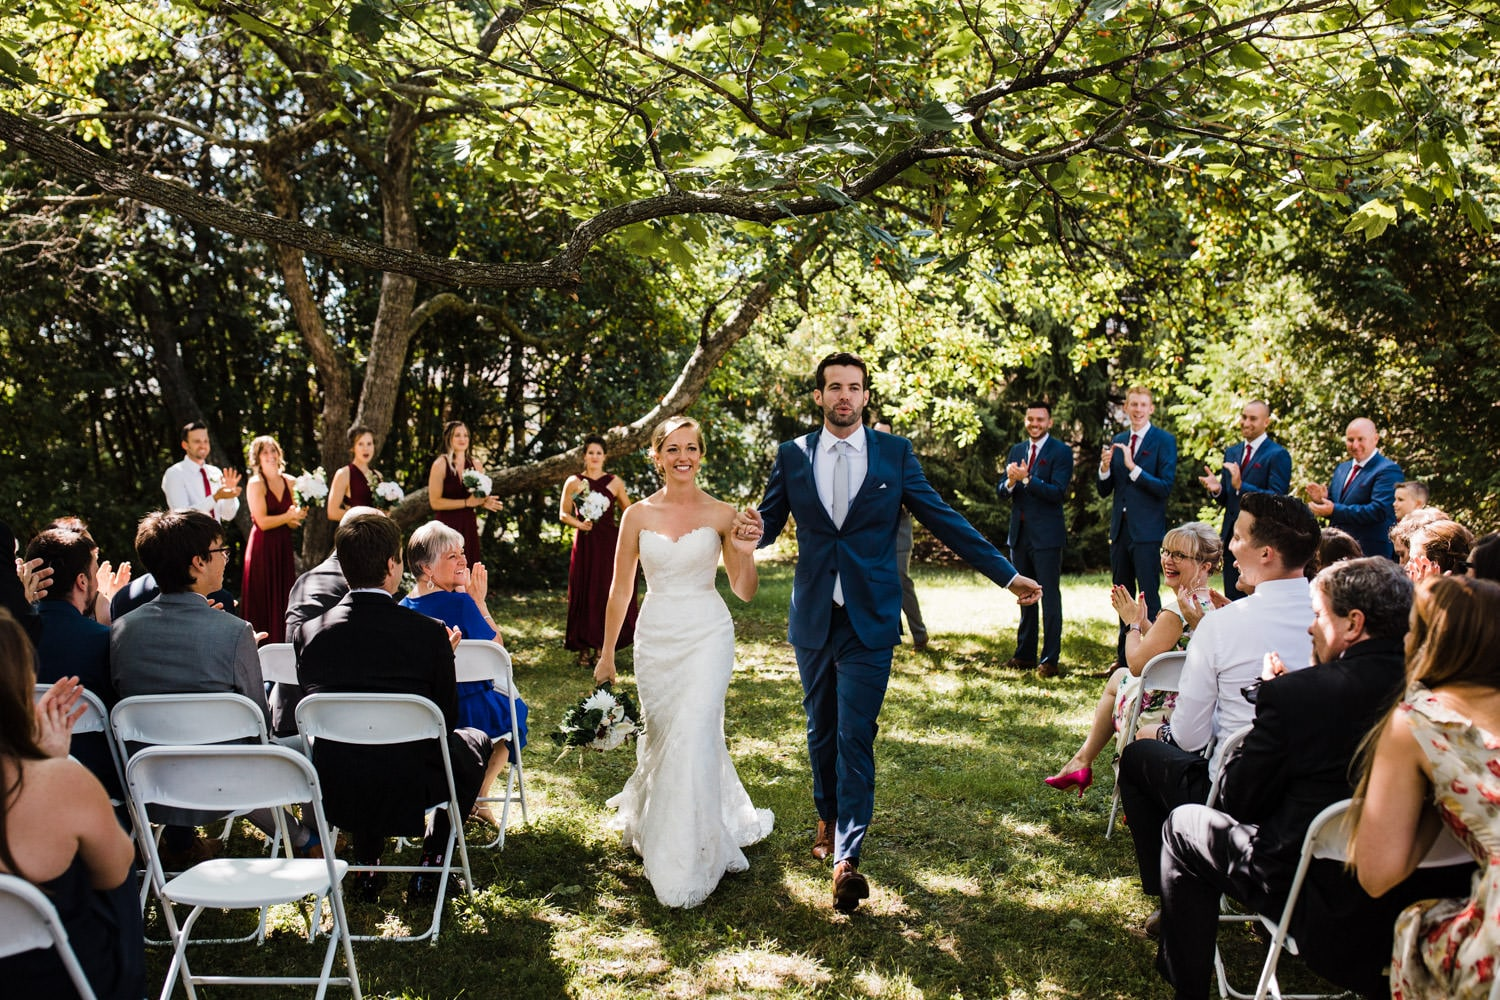 bride and groom recessional - fairfield heritage house wedding - glebe community centre wedding